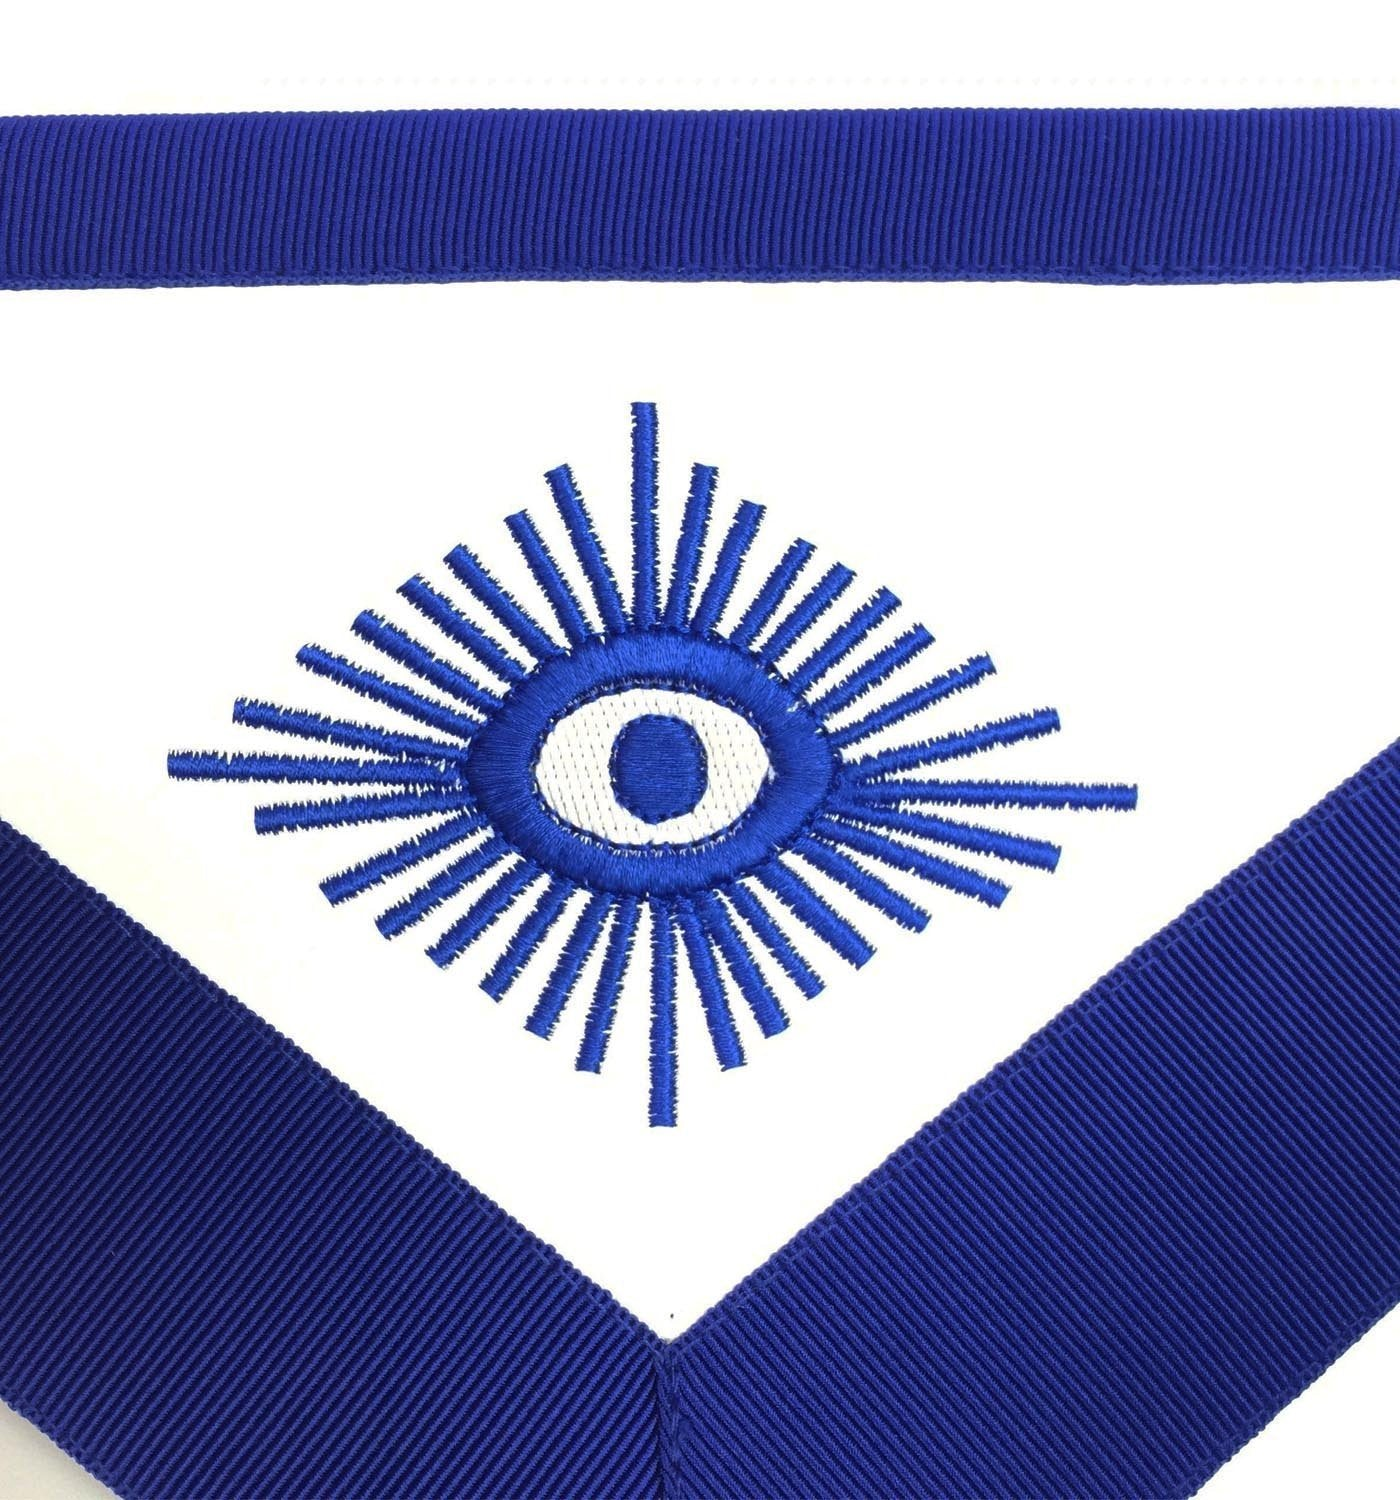 Masonic Blue Lodge Officers Aprons with Wreath - Bricks Masons